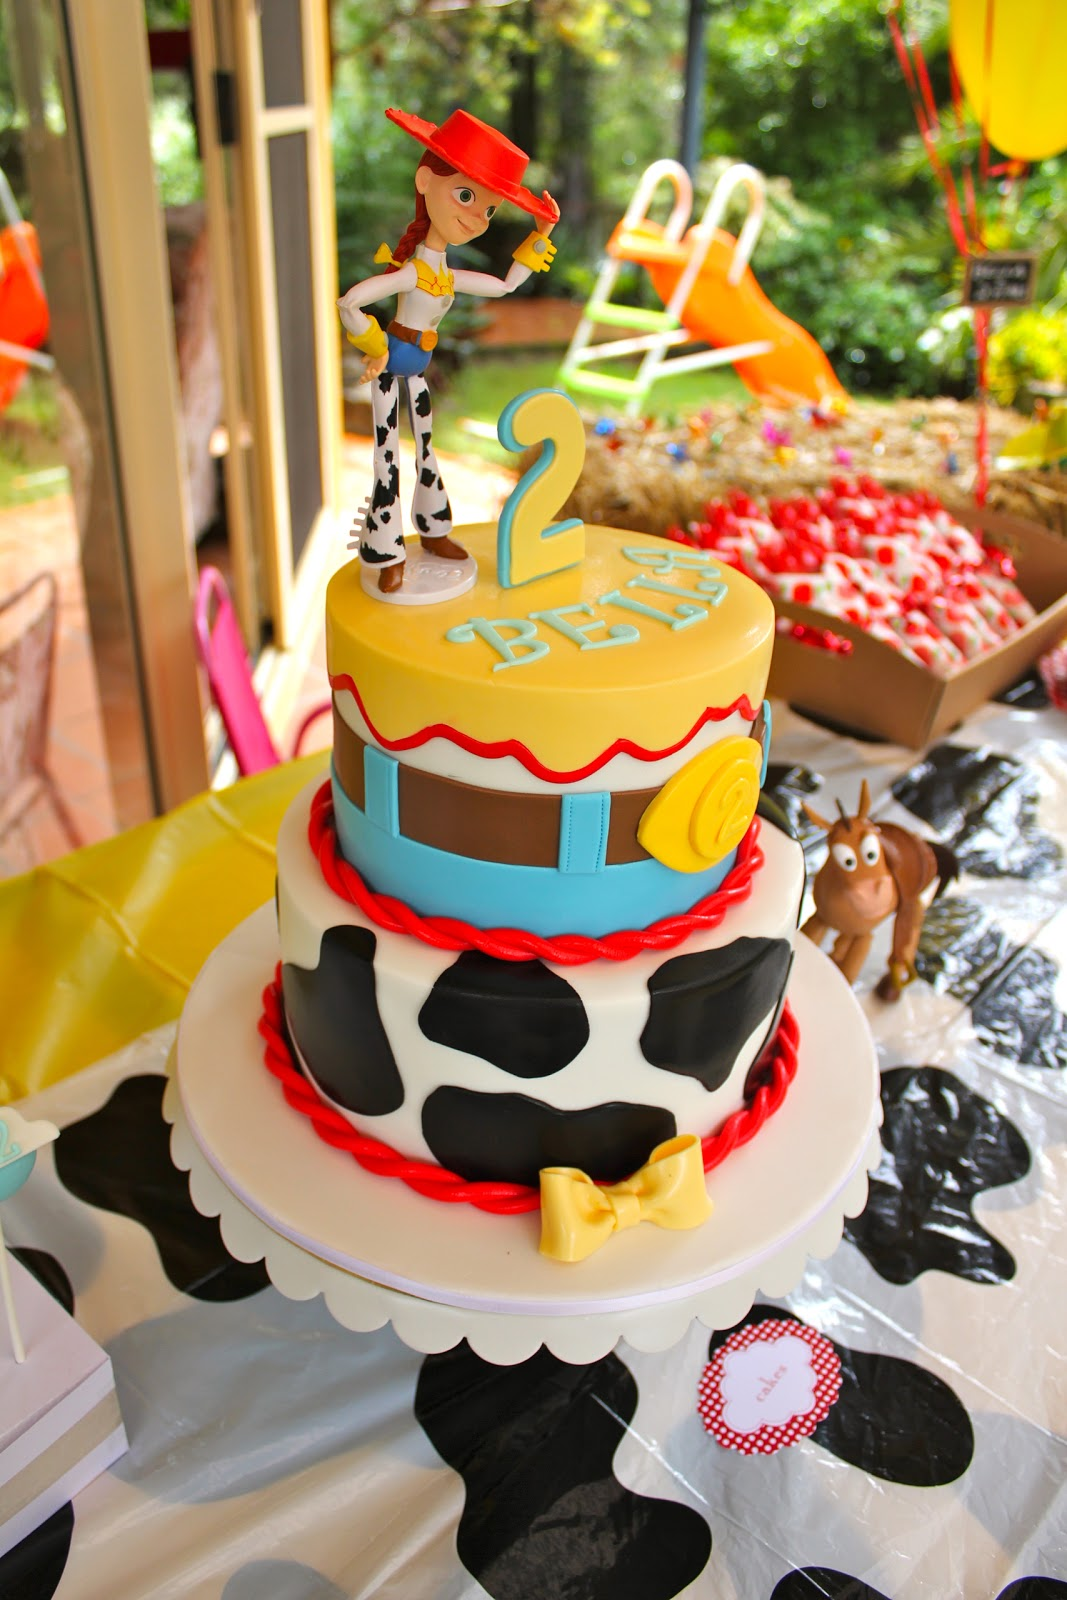 Bellas Jessie The Cowgirl Birthday Cake Created By Mio Cupcakes Cakes